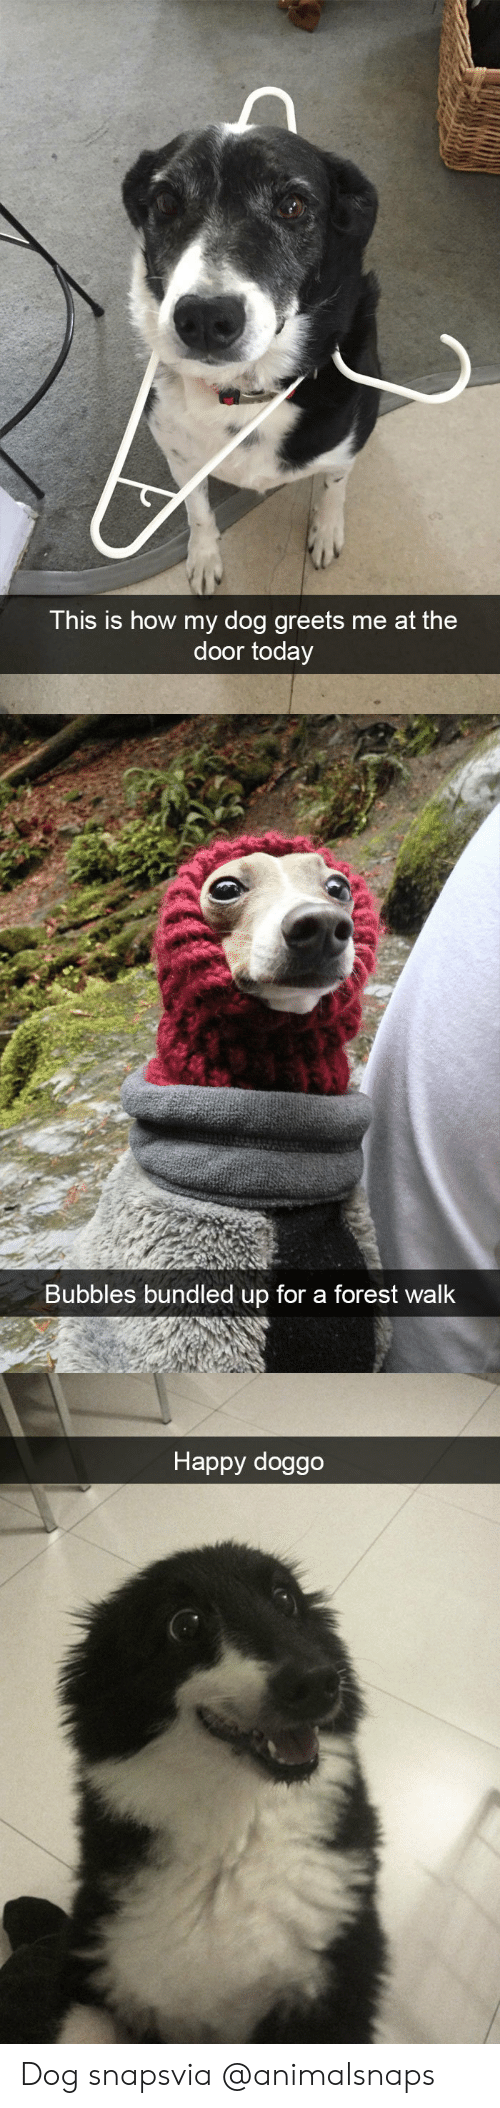 Target, Tumblr, and Happy: This is how my dog greets me at the  door today   Bubbles bundled up for a forest walk   Happy doggo Dog snapsvia @animalsnaps